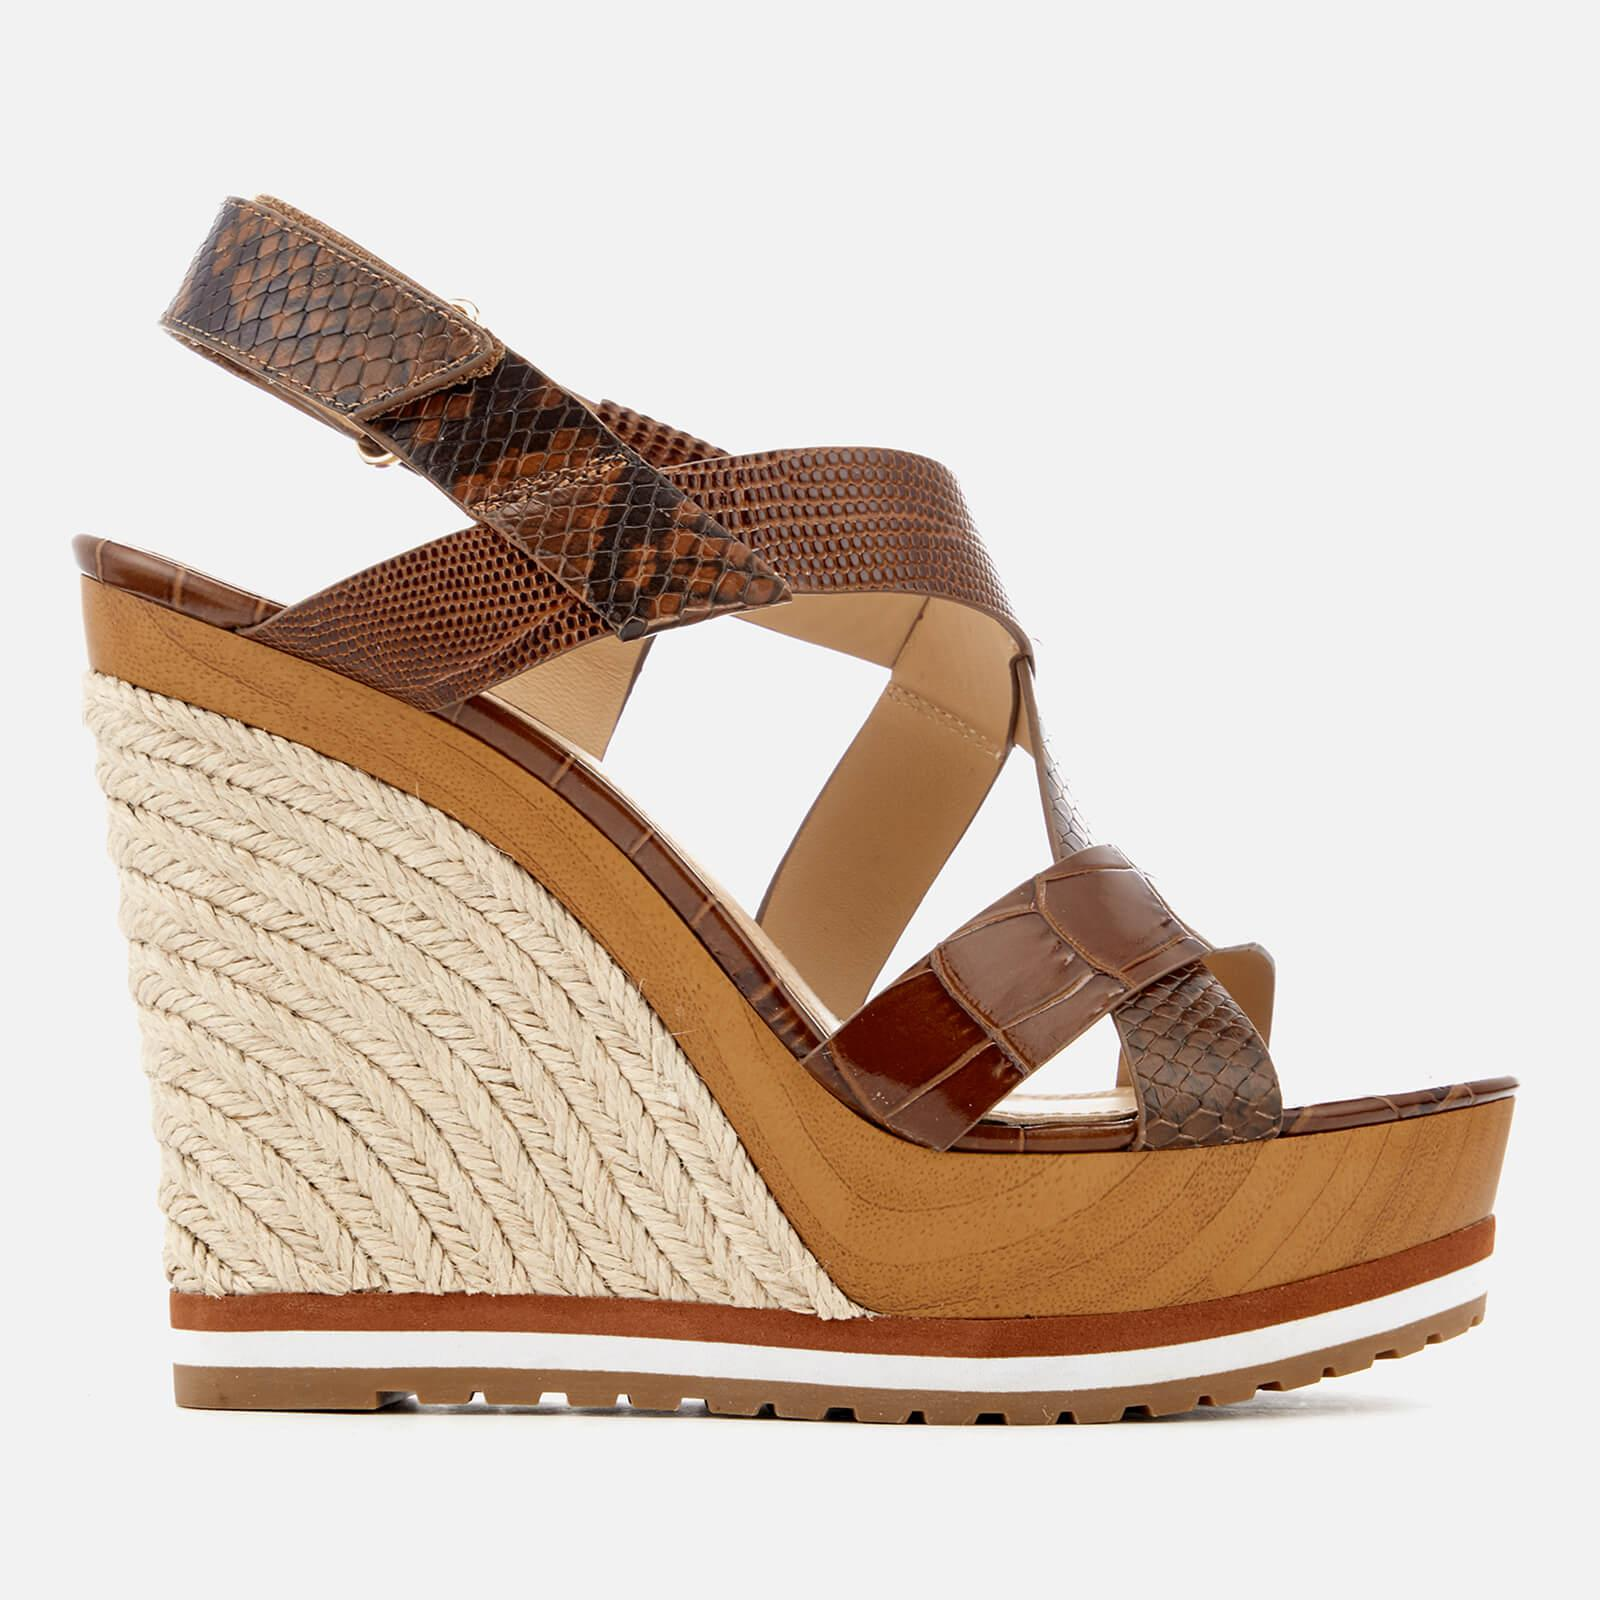 0fa5a09359 MICHAEL Michael Kors. Women's Brown Mackay Embossed Croc/leather Wedged  Sandals